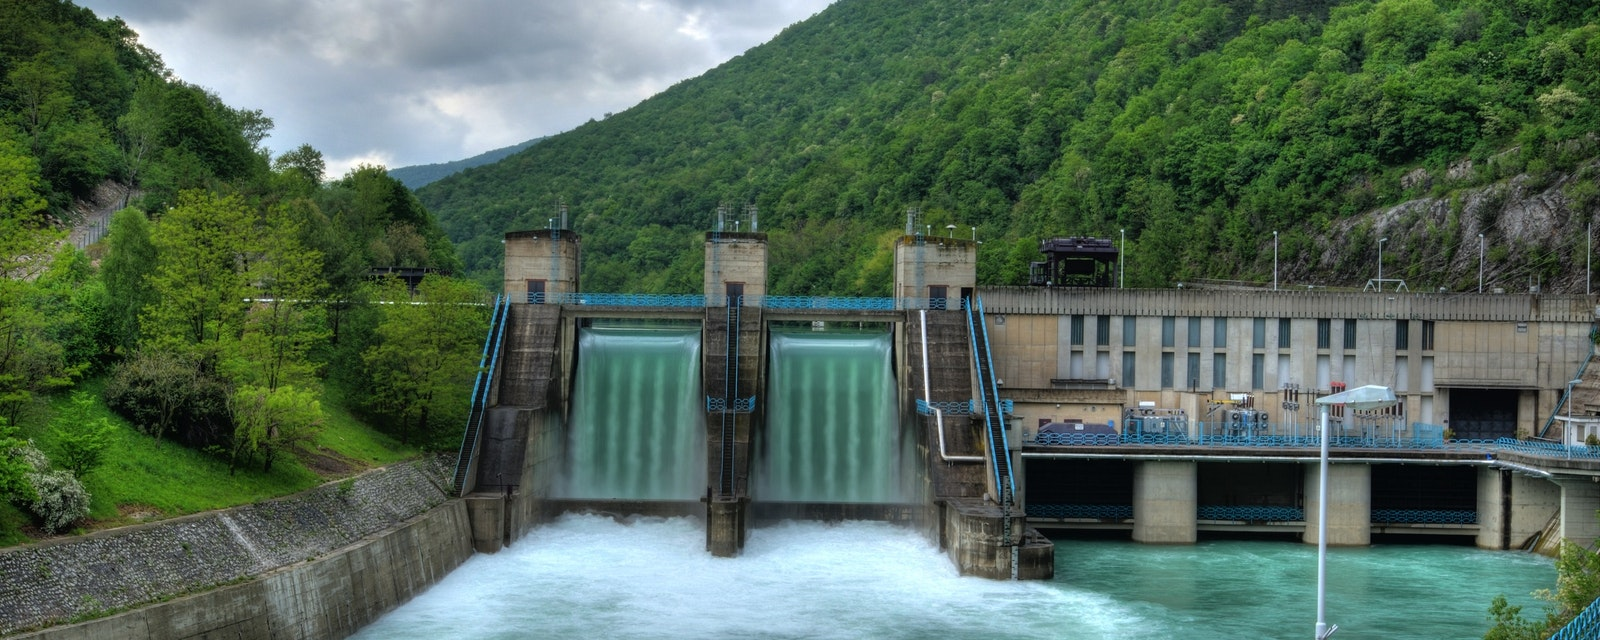 Hydro,Electric,Electricity,Power,Plant,-,Powerplant,Waterfall,Over,Dam